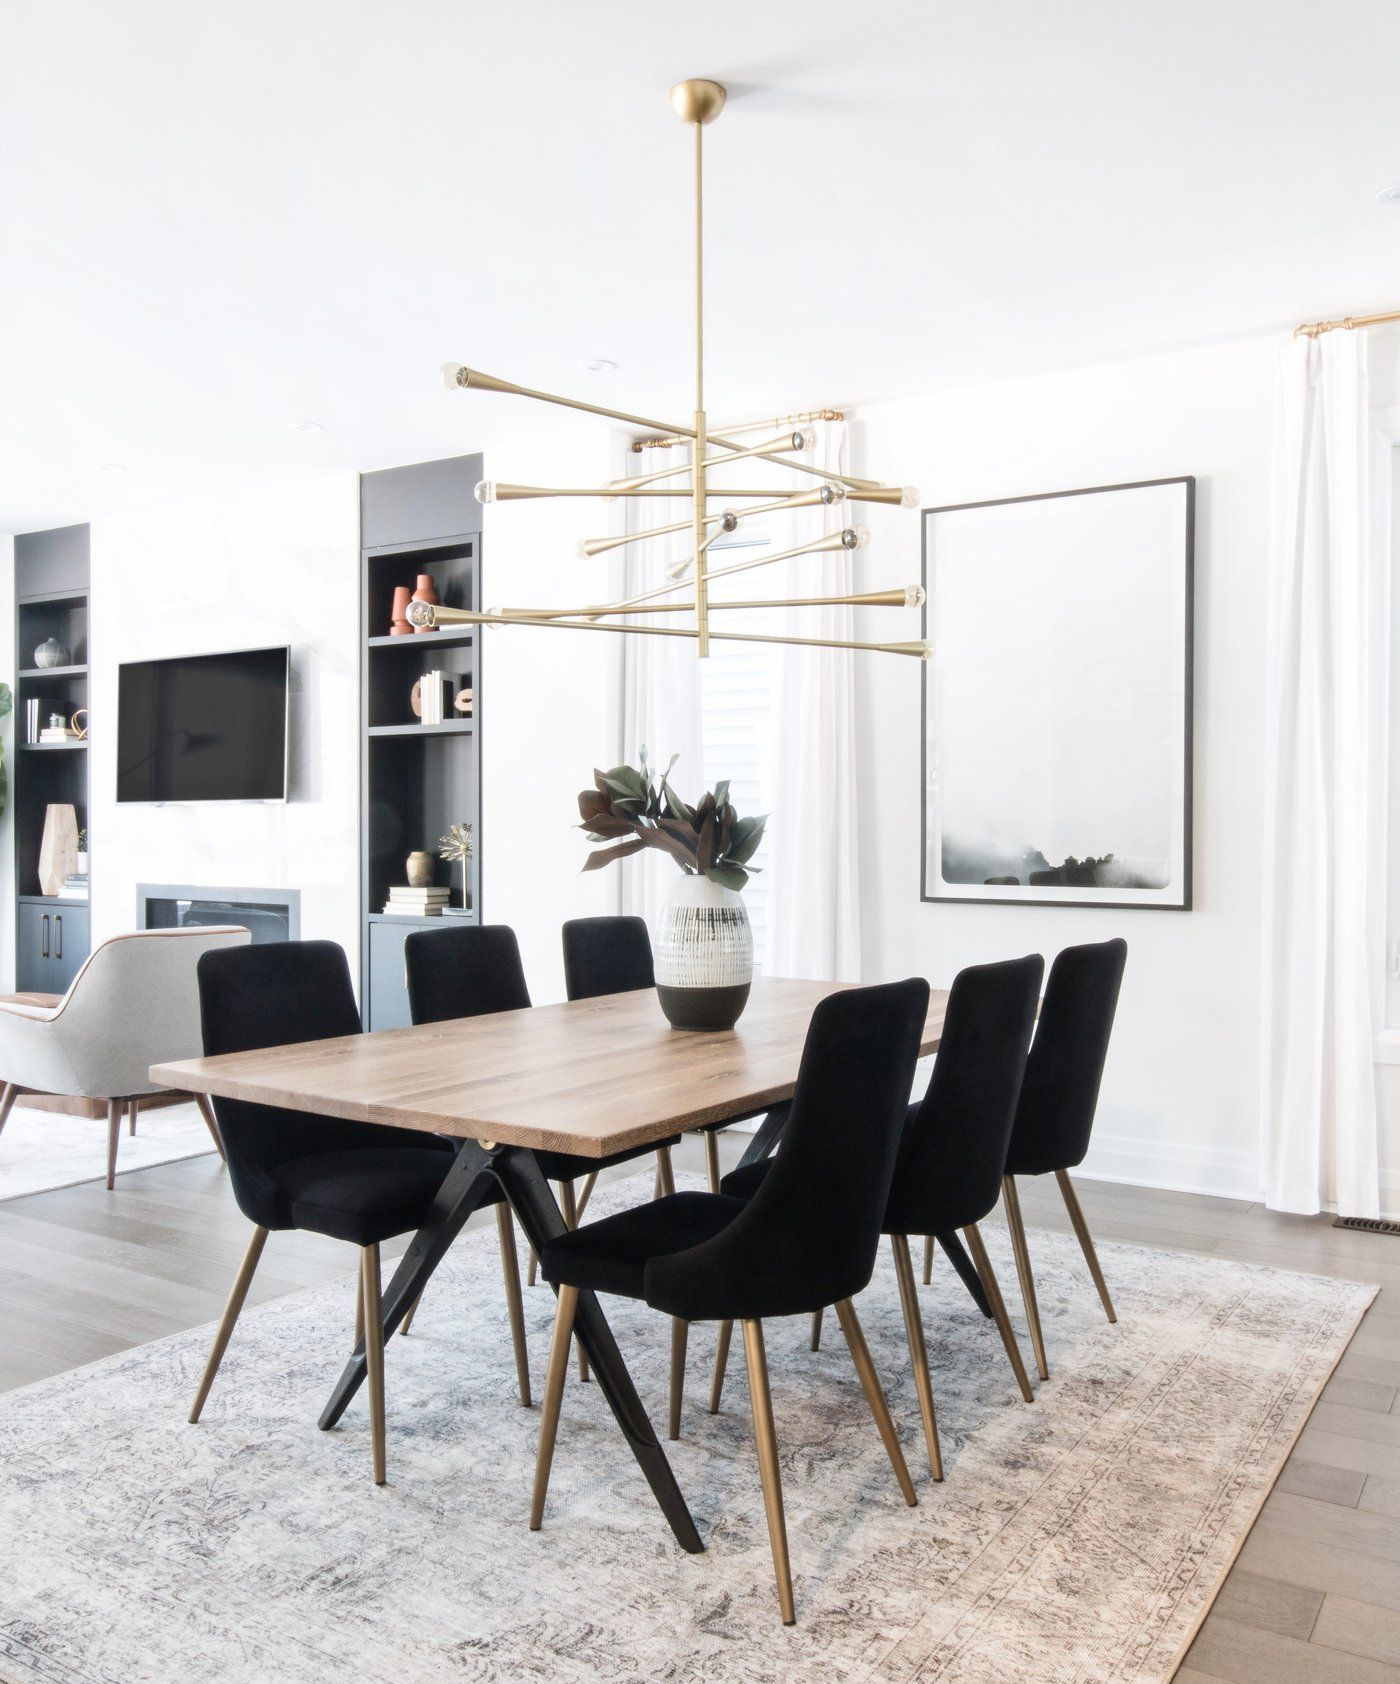 Whether Your Intentions Are To Place It In A Guest Room For A Pop Of Colour And A Comfortable Respite Fo Dining Room Small Black Dining Room Modern Dining Room